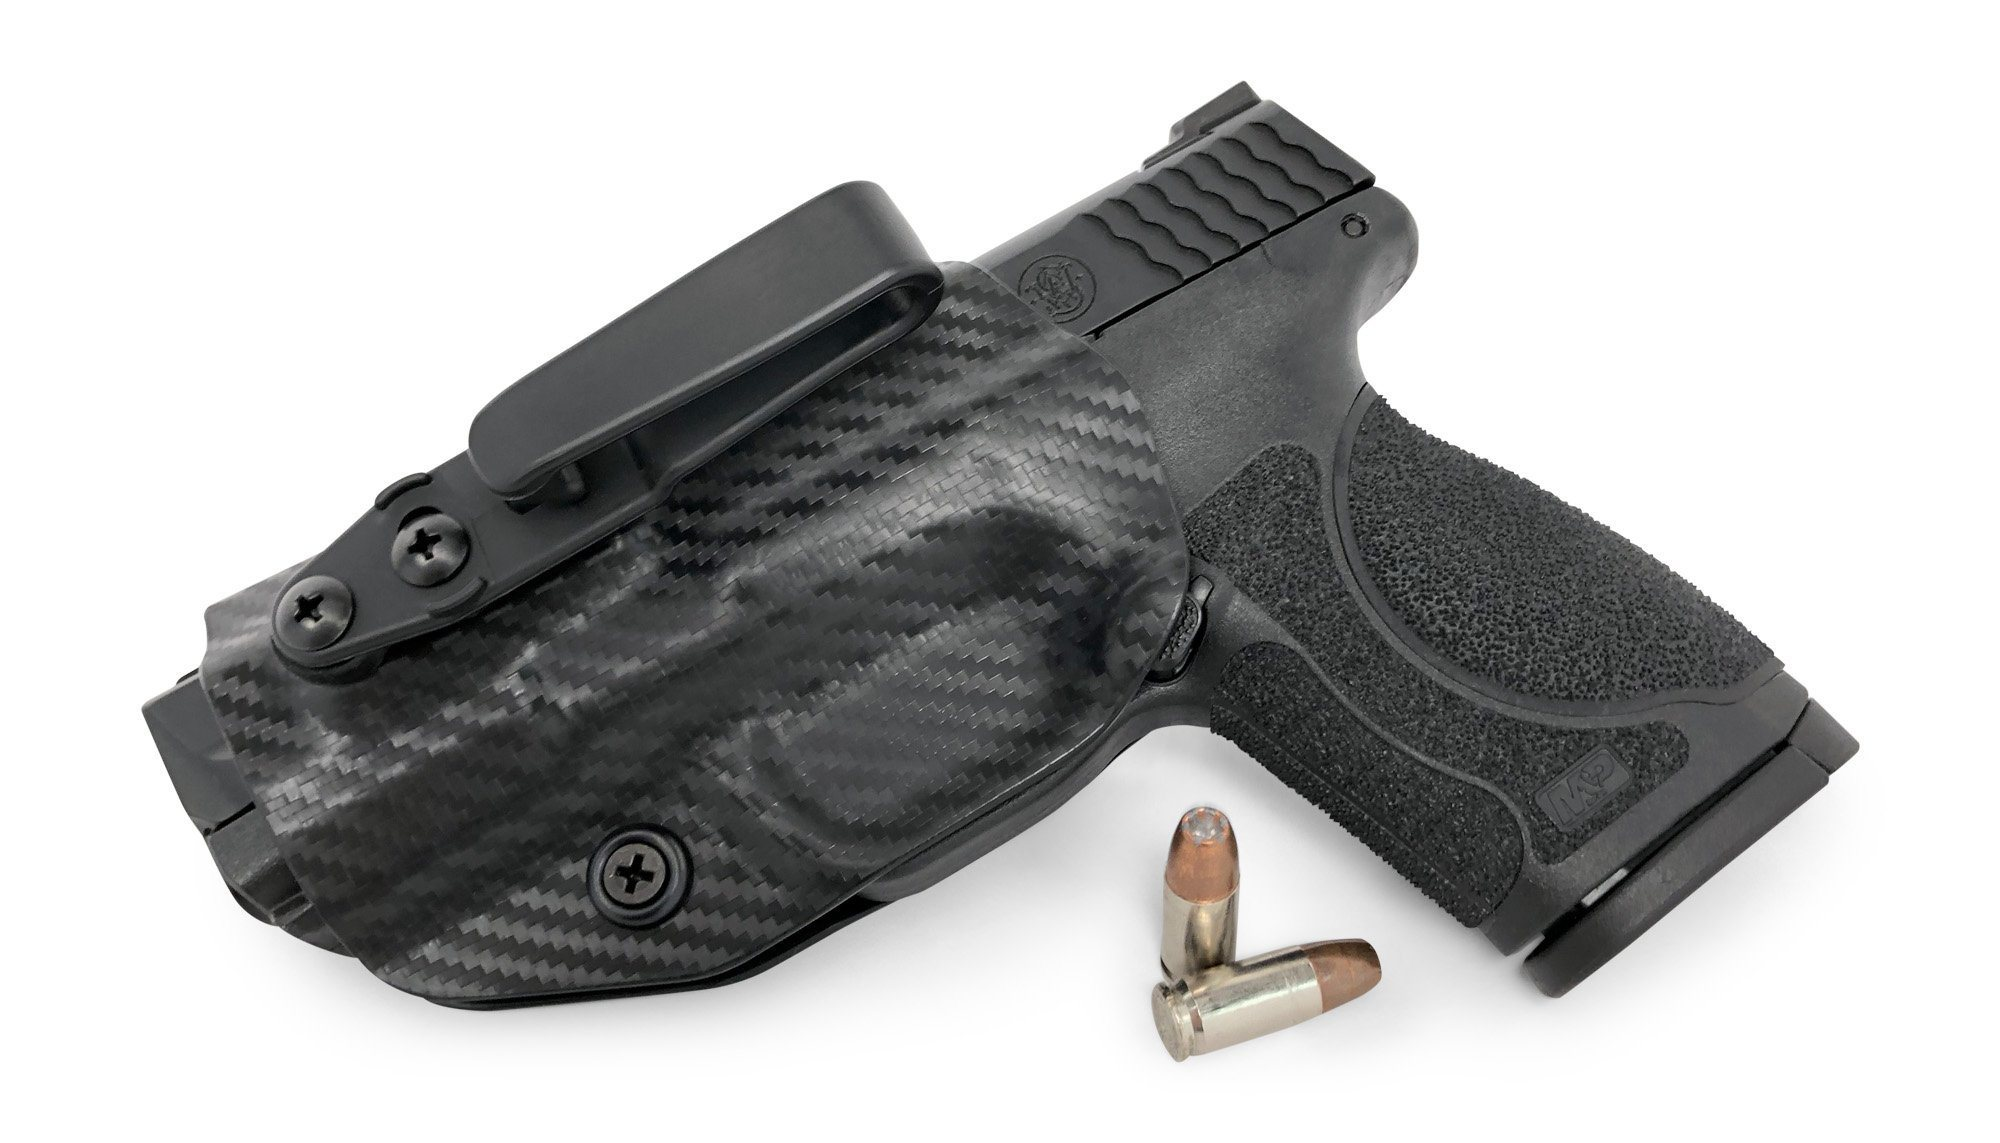 tuckable-iwb-kydex-holster-smith-wesson-m-p-m2-0-9-40-compact-4-0-full-size-4-25-tuckable-iwb-kydex-holster-6